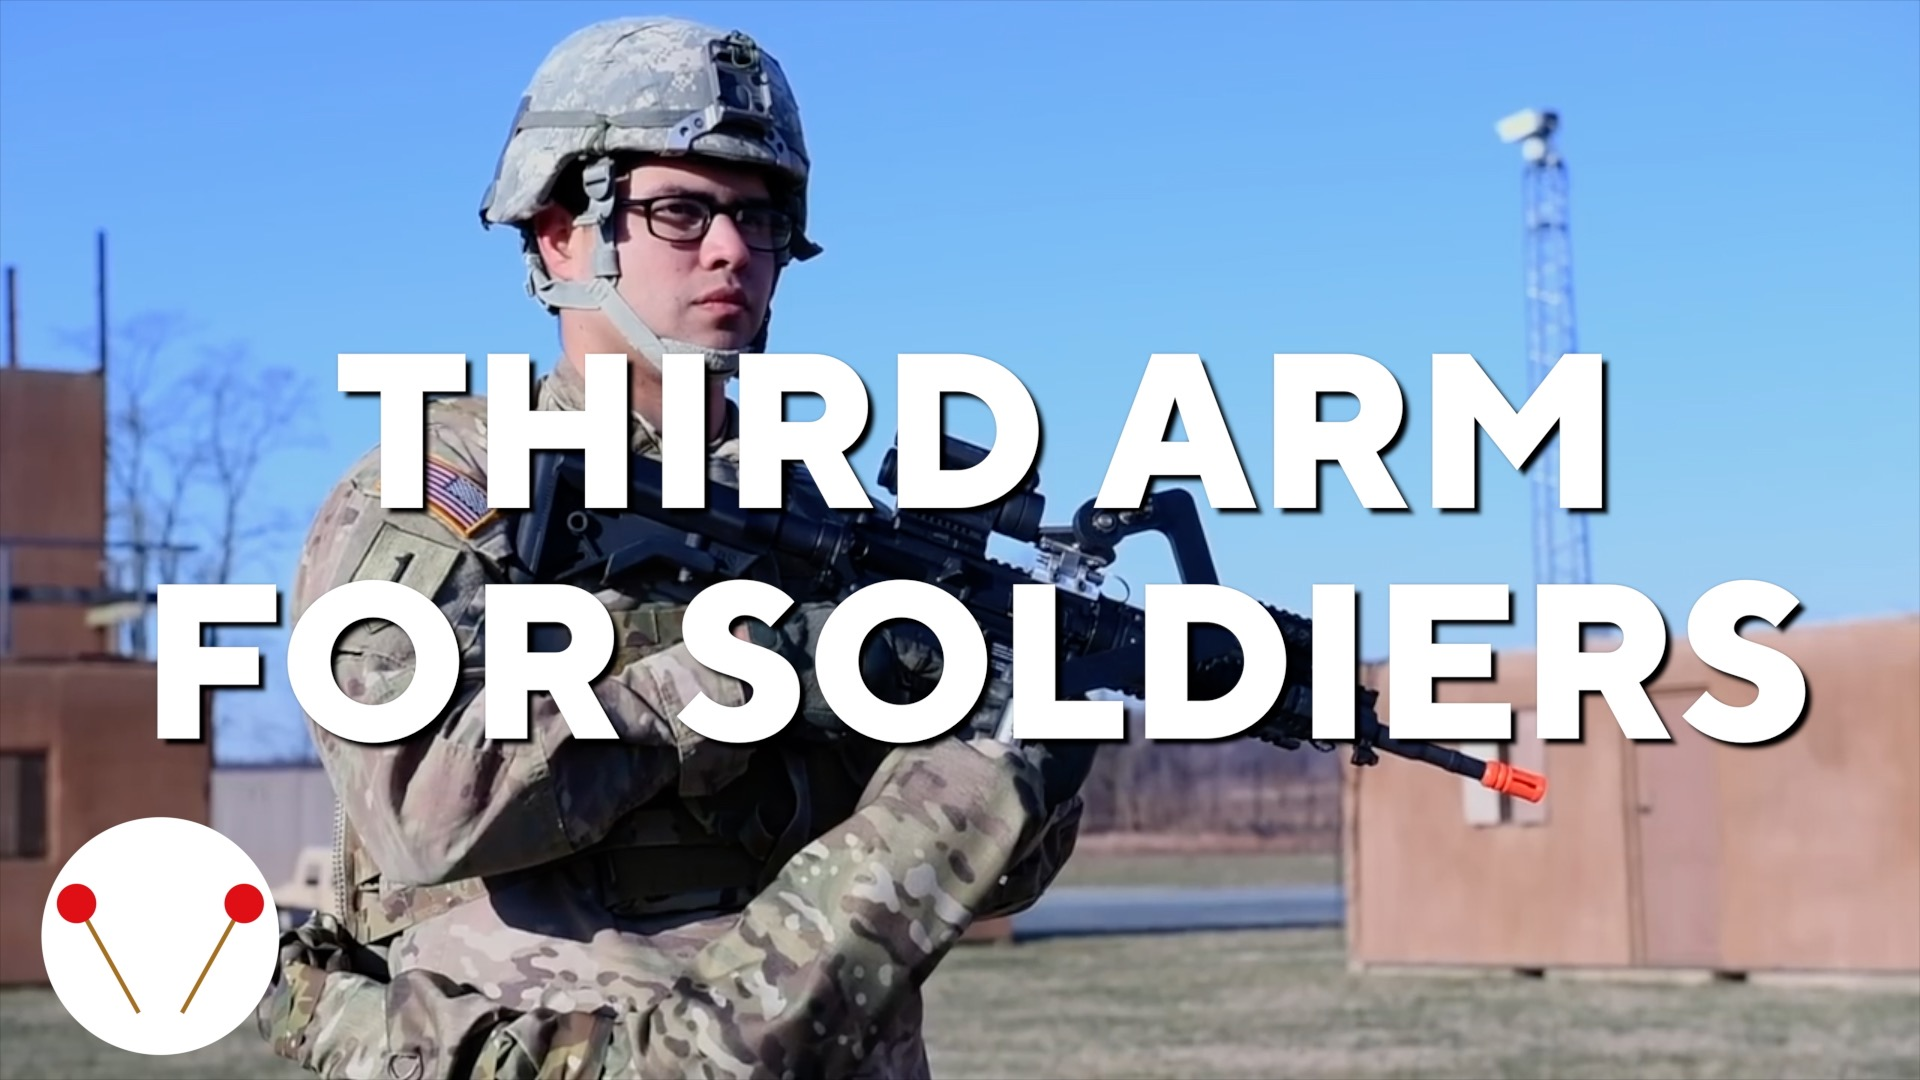 US Army develops 'third arm' for soldiers